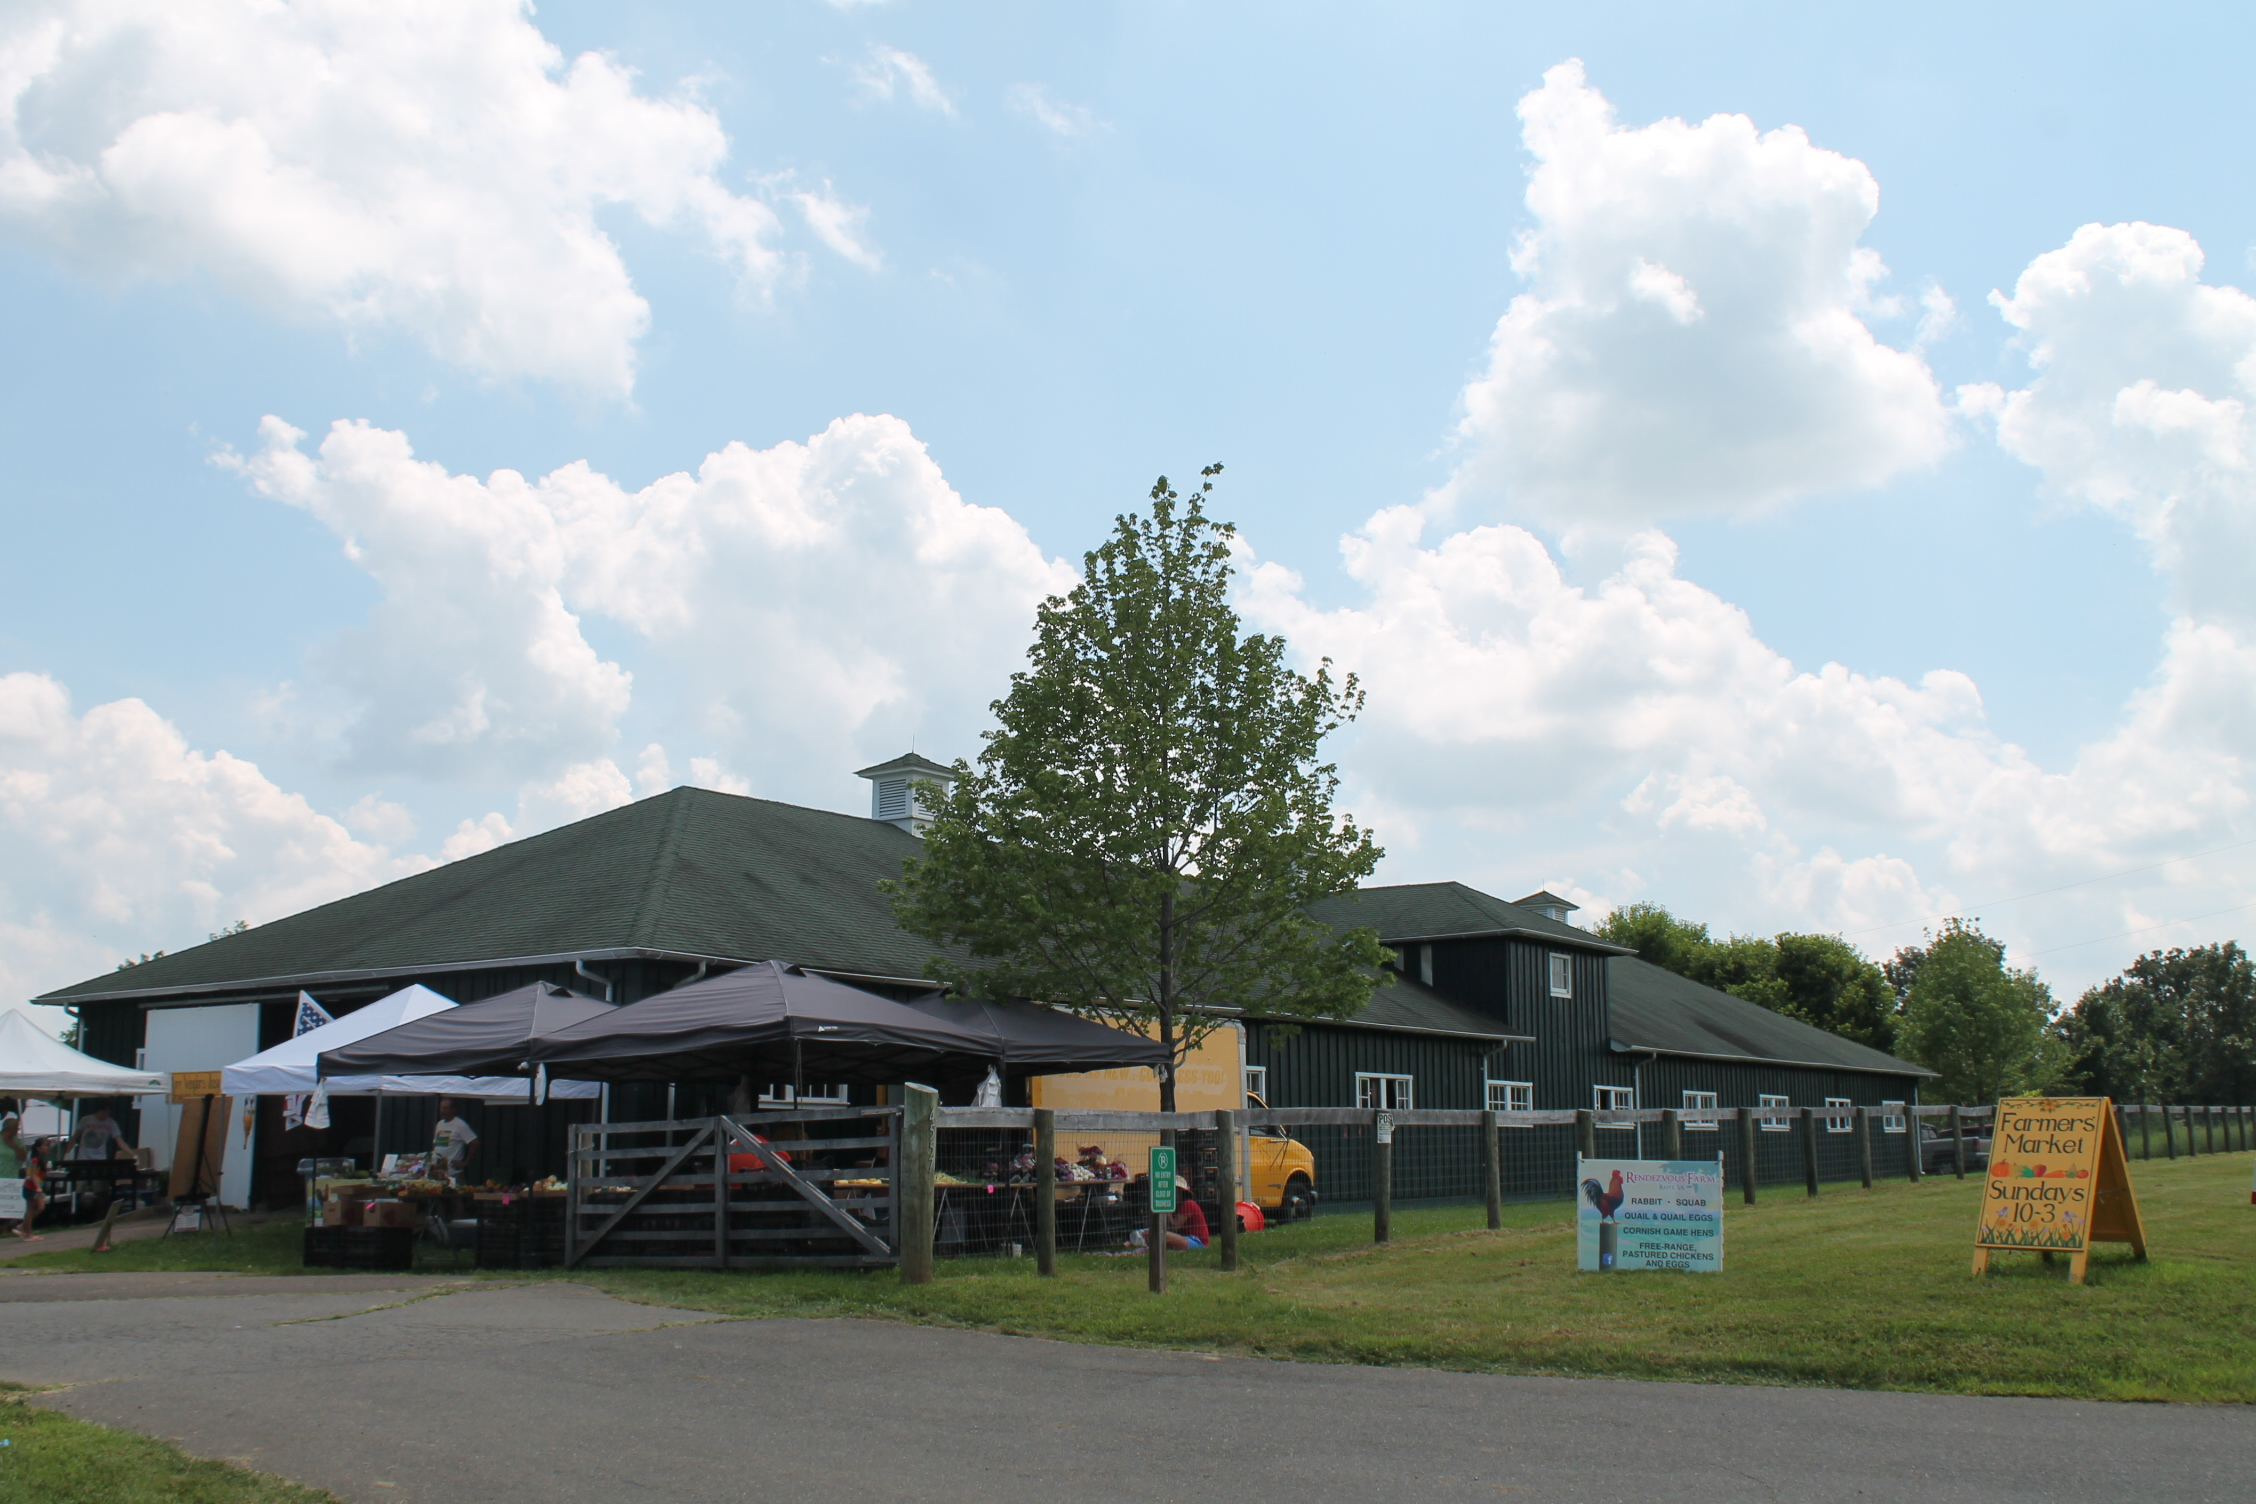 Archwood Green Barns Farmers' Market